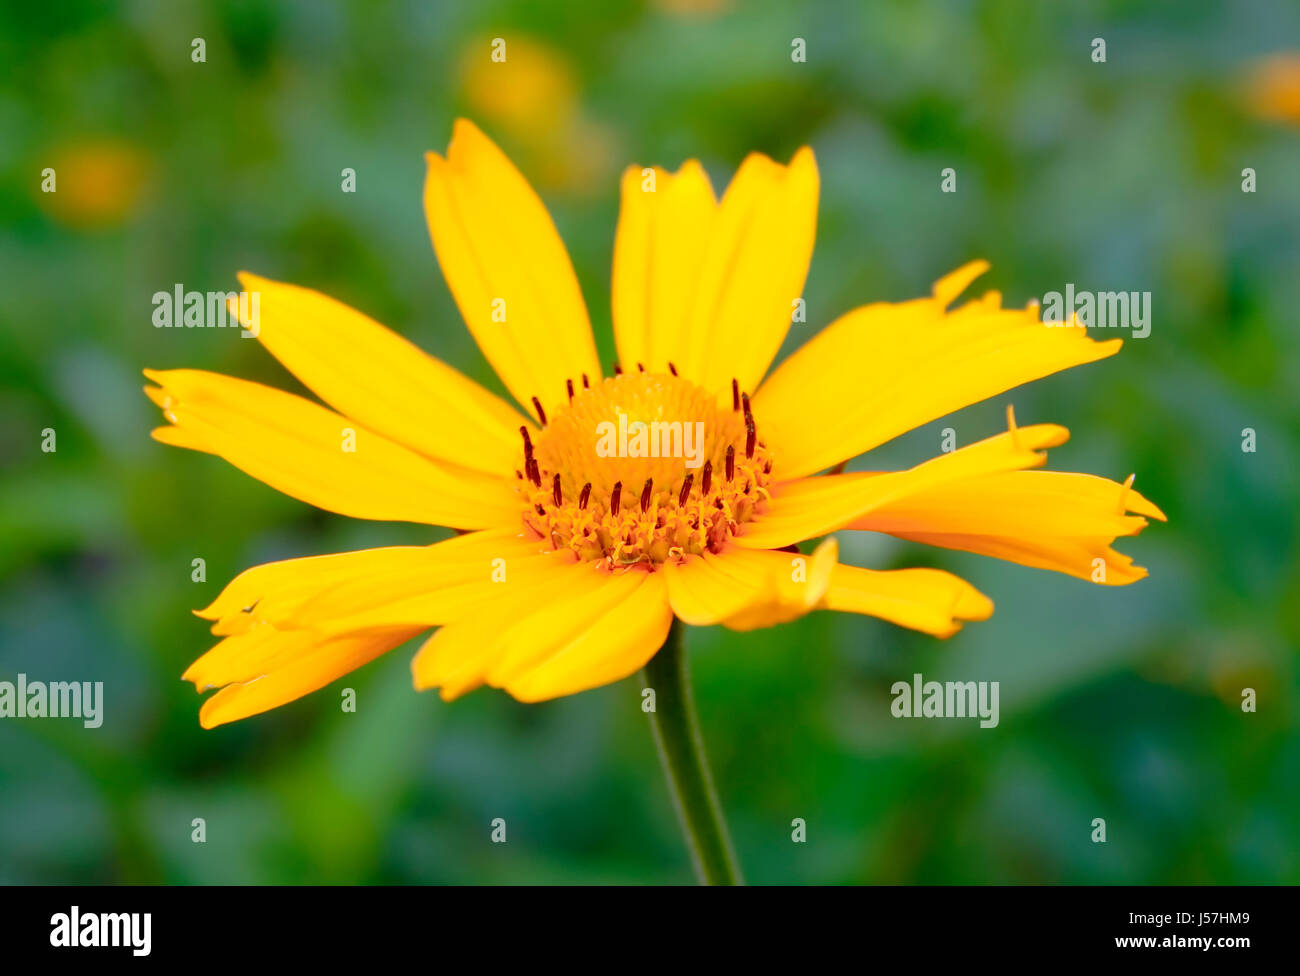 Close up of inflorescence plant from family Asteraceae (Compositae) on blurred background - Stock Image